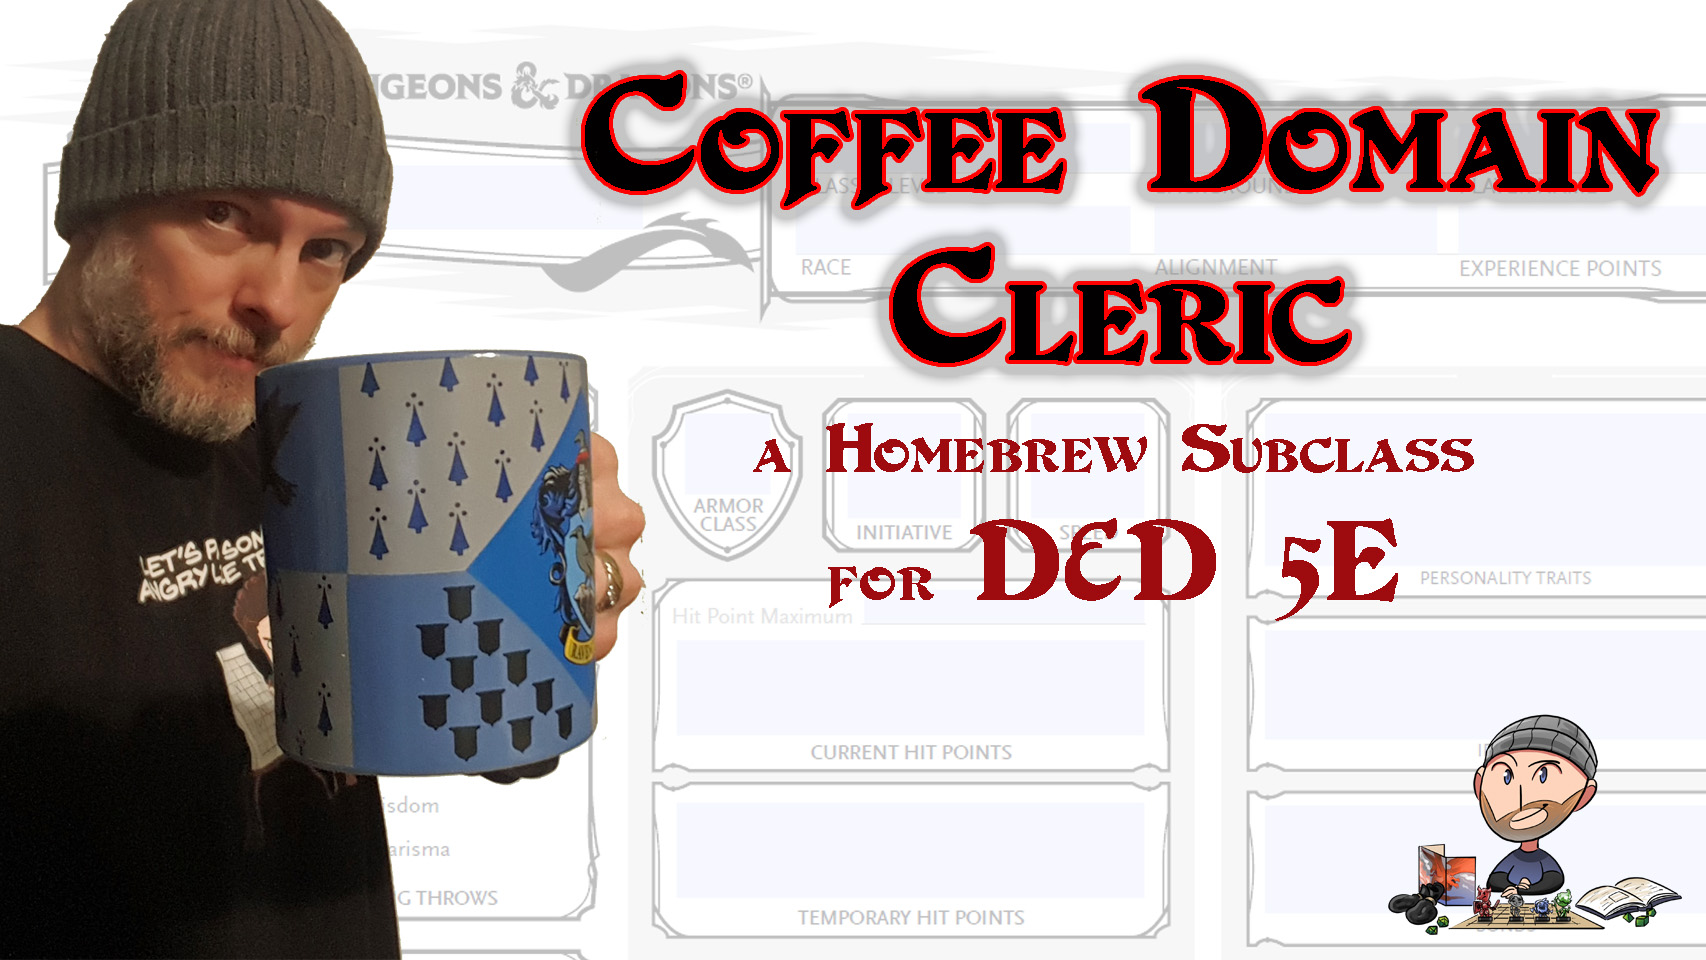 D&D 5E Coffee Domain Cleric Build – Homebrew Subclass – Wally DM